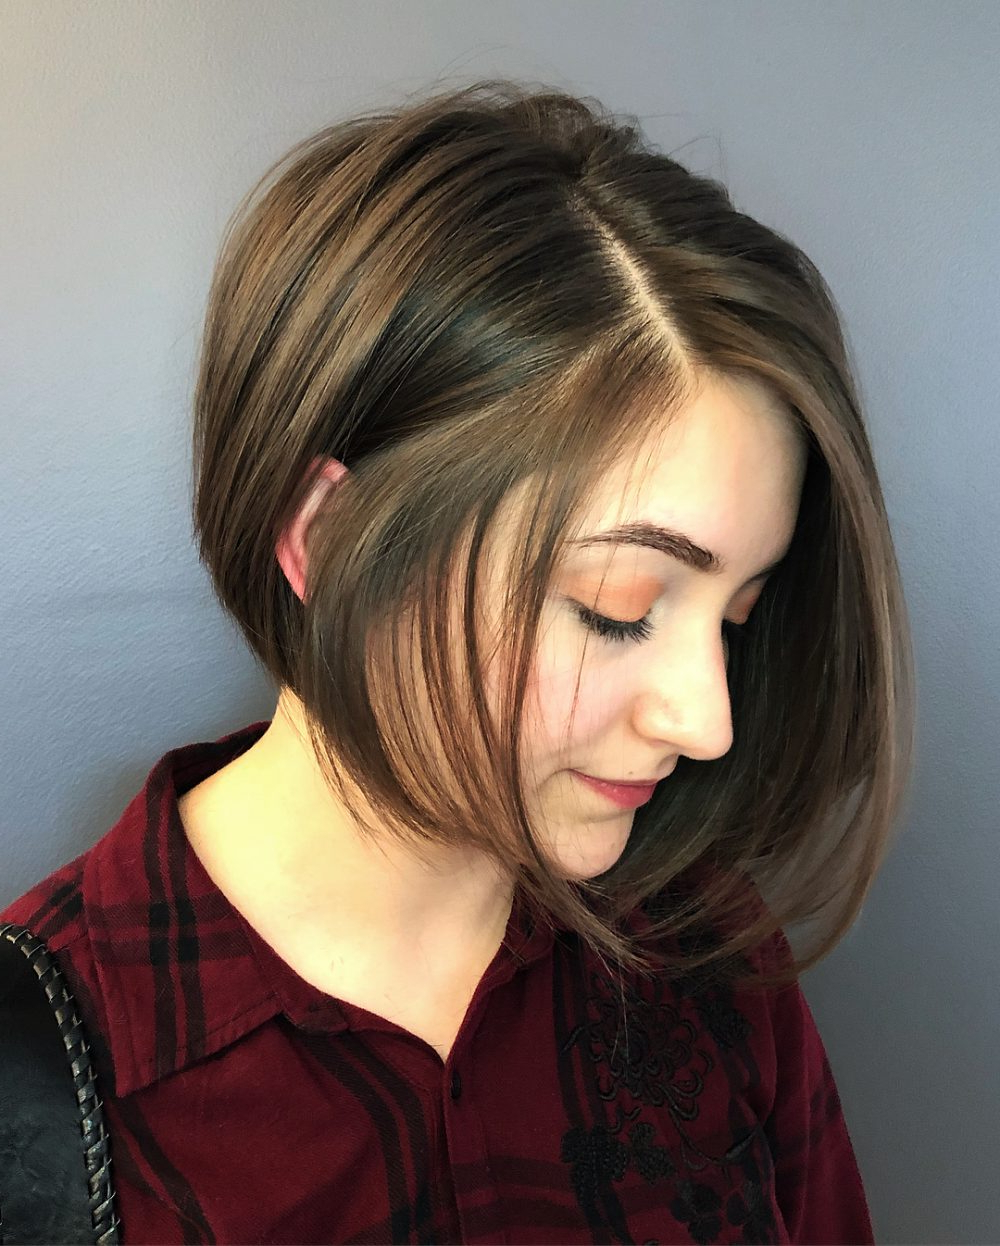 Well Liked Medium Hairstyles For Big Cheeks Intended For 33 Most Flattering Short Hairstyles For Round Faces (View 20 of 20)